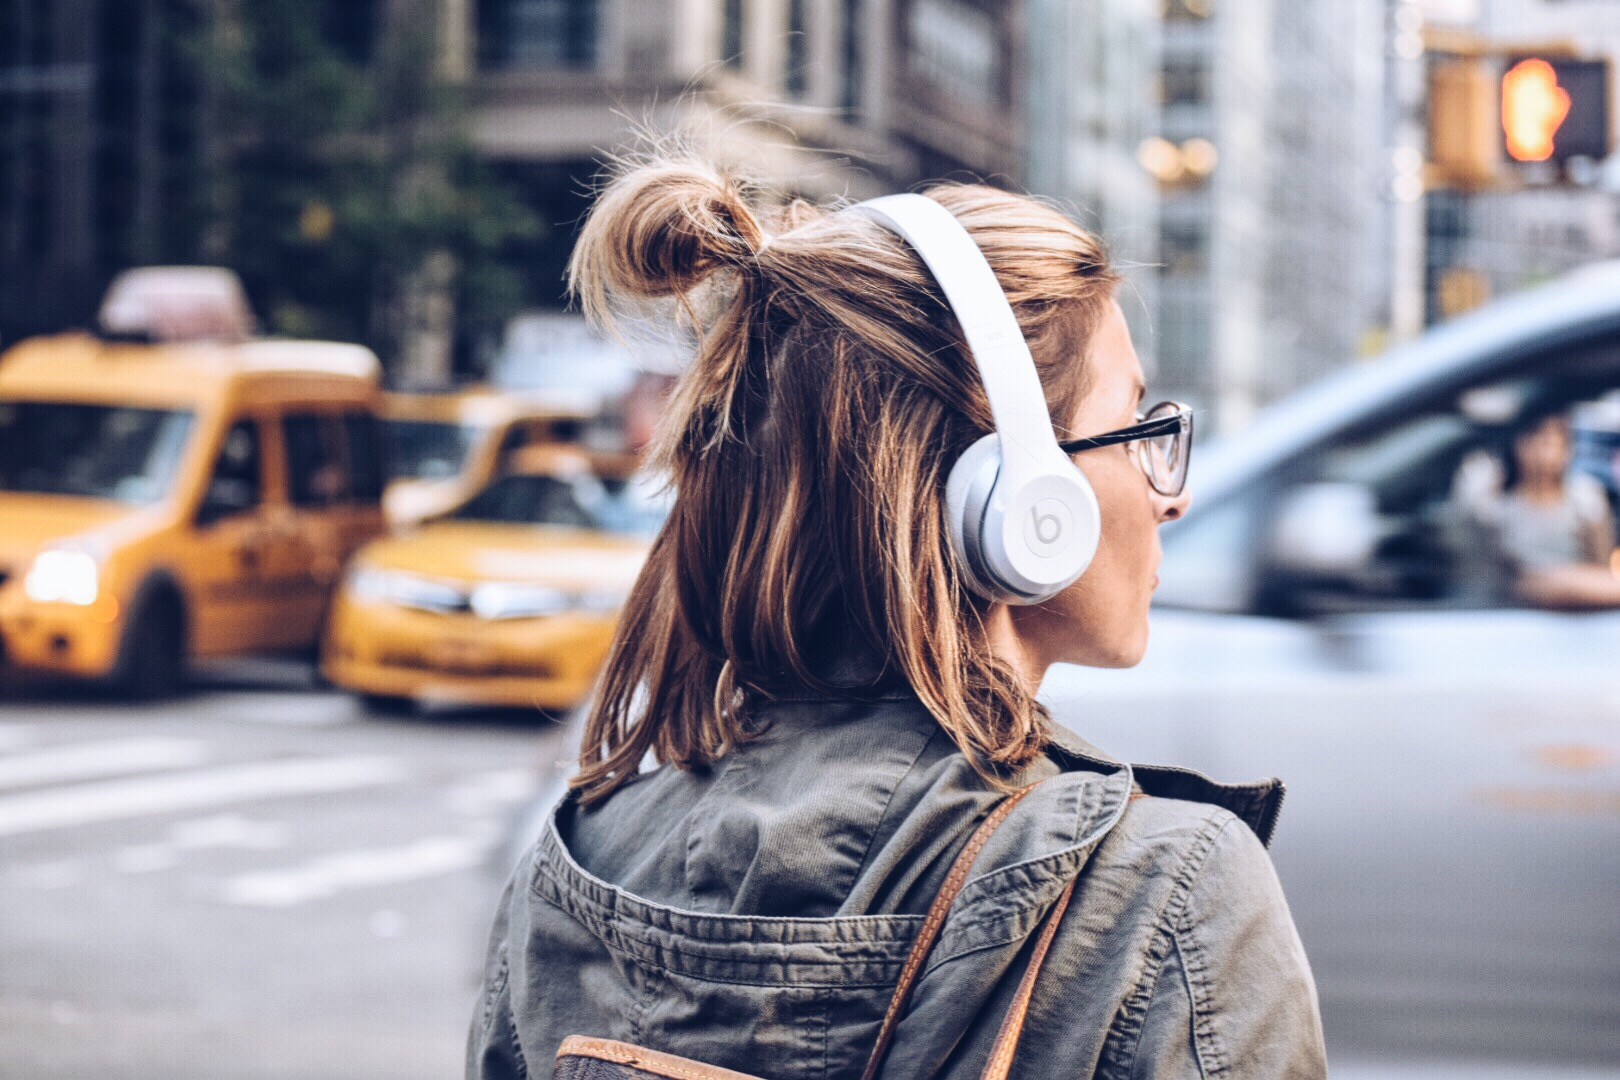 Find cool podcasts - chat to friends and research topics that interest and challenge your point of view.